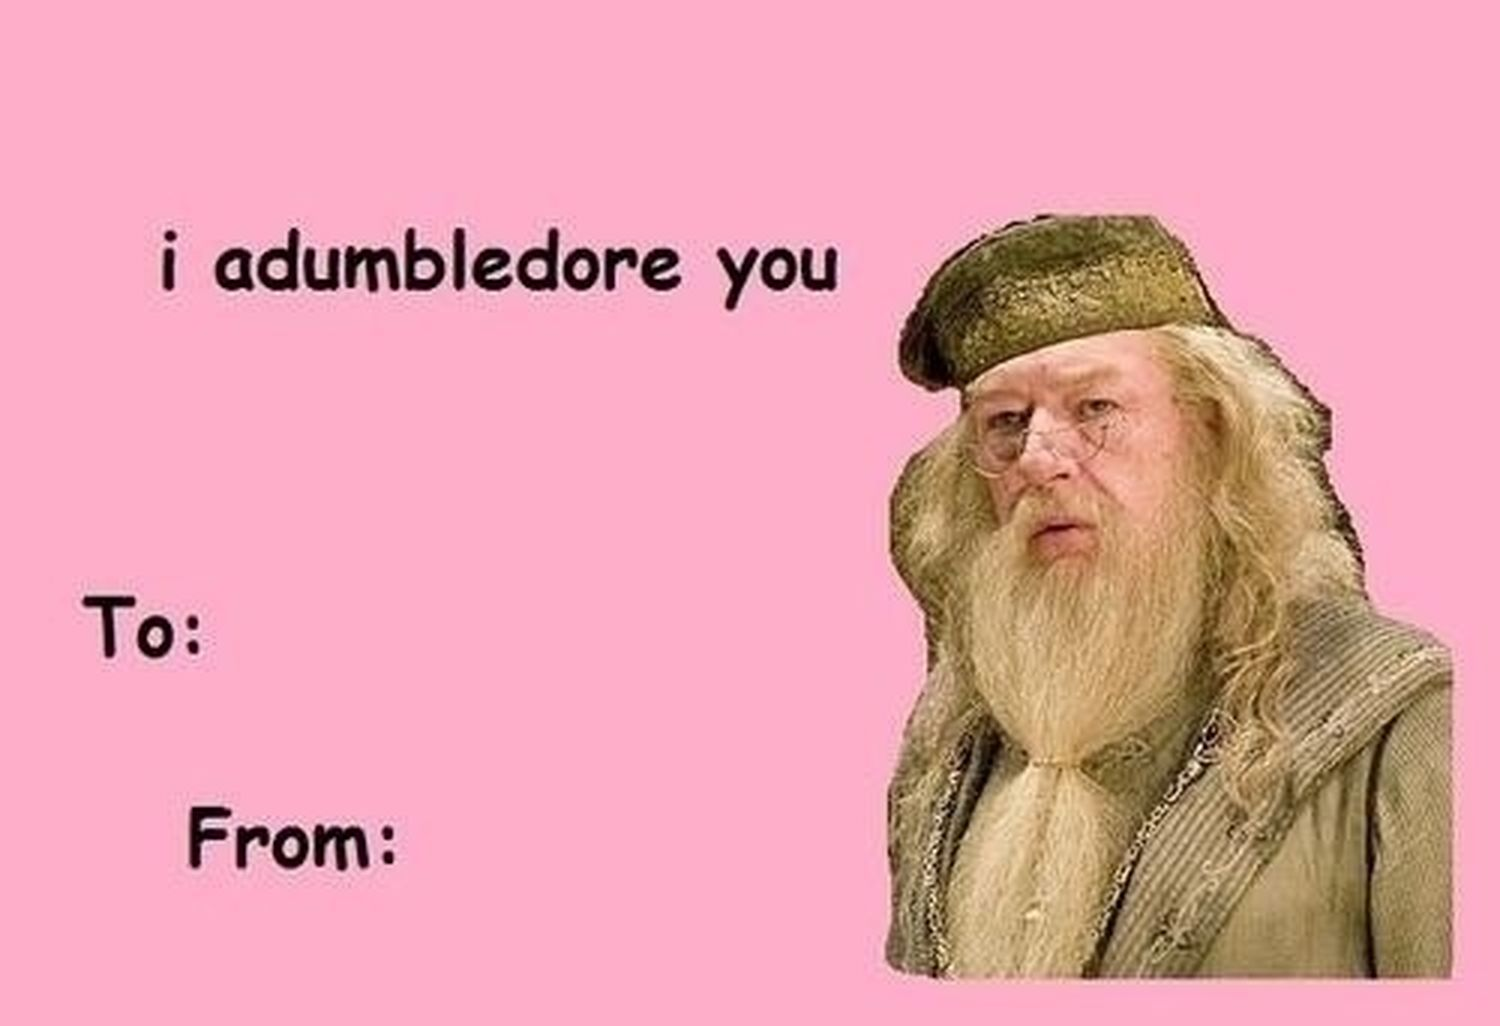 I-Adumbledore-You-Harry-Potter-Valentines-Card-1452564799.jpg